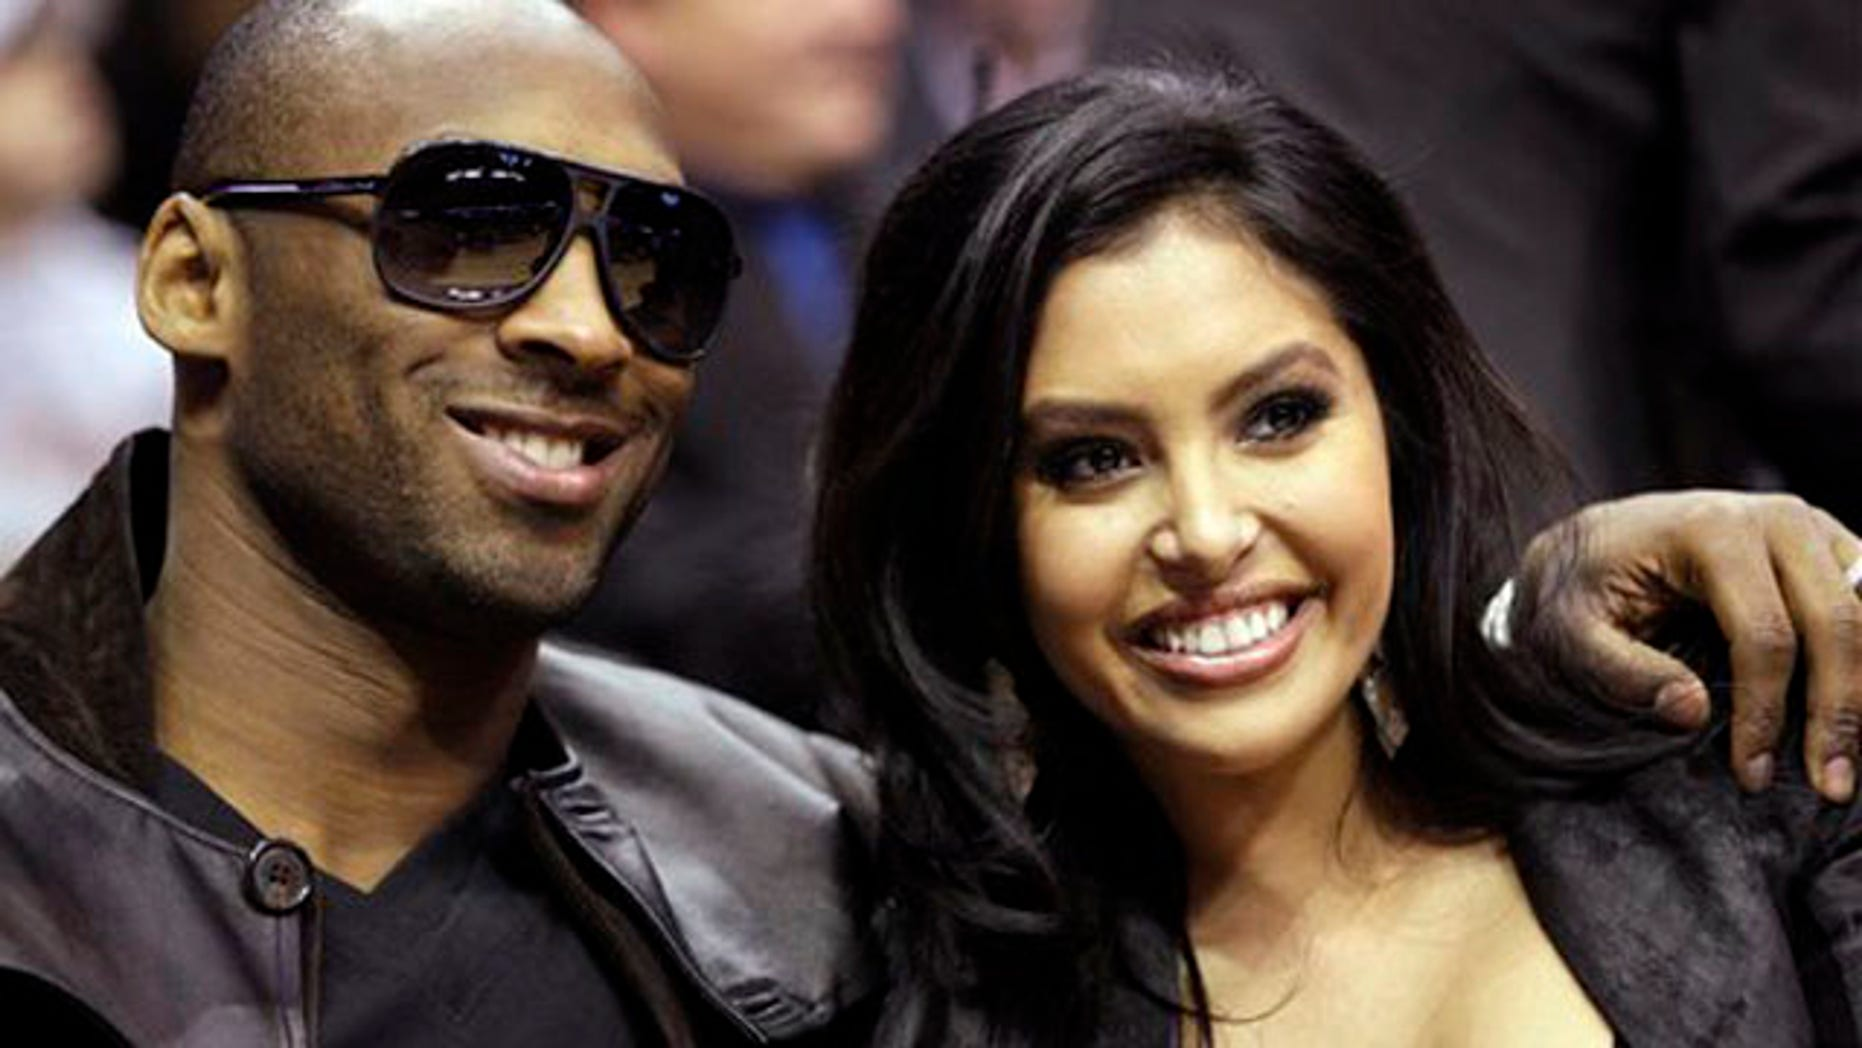 Feb. 13, 2010: Los Angeles Lakers guard Kobe Bryant and his wife, Vanessa, attend the skills competition at the NBA basketball All-Star Saturday Night in Dallas. (AP)